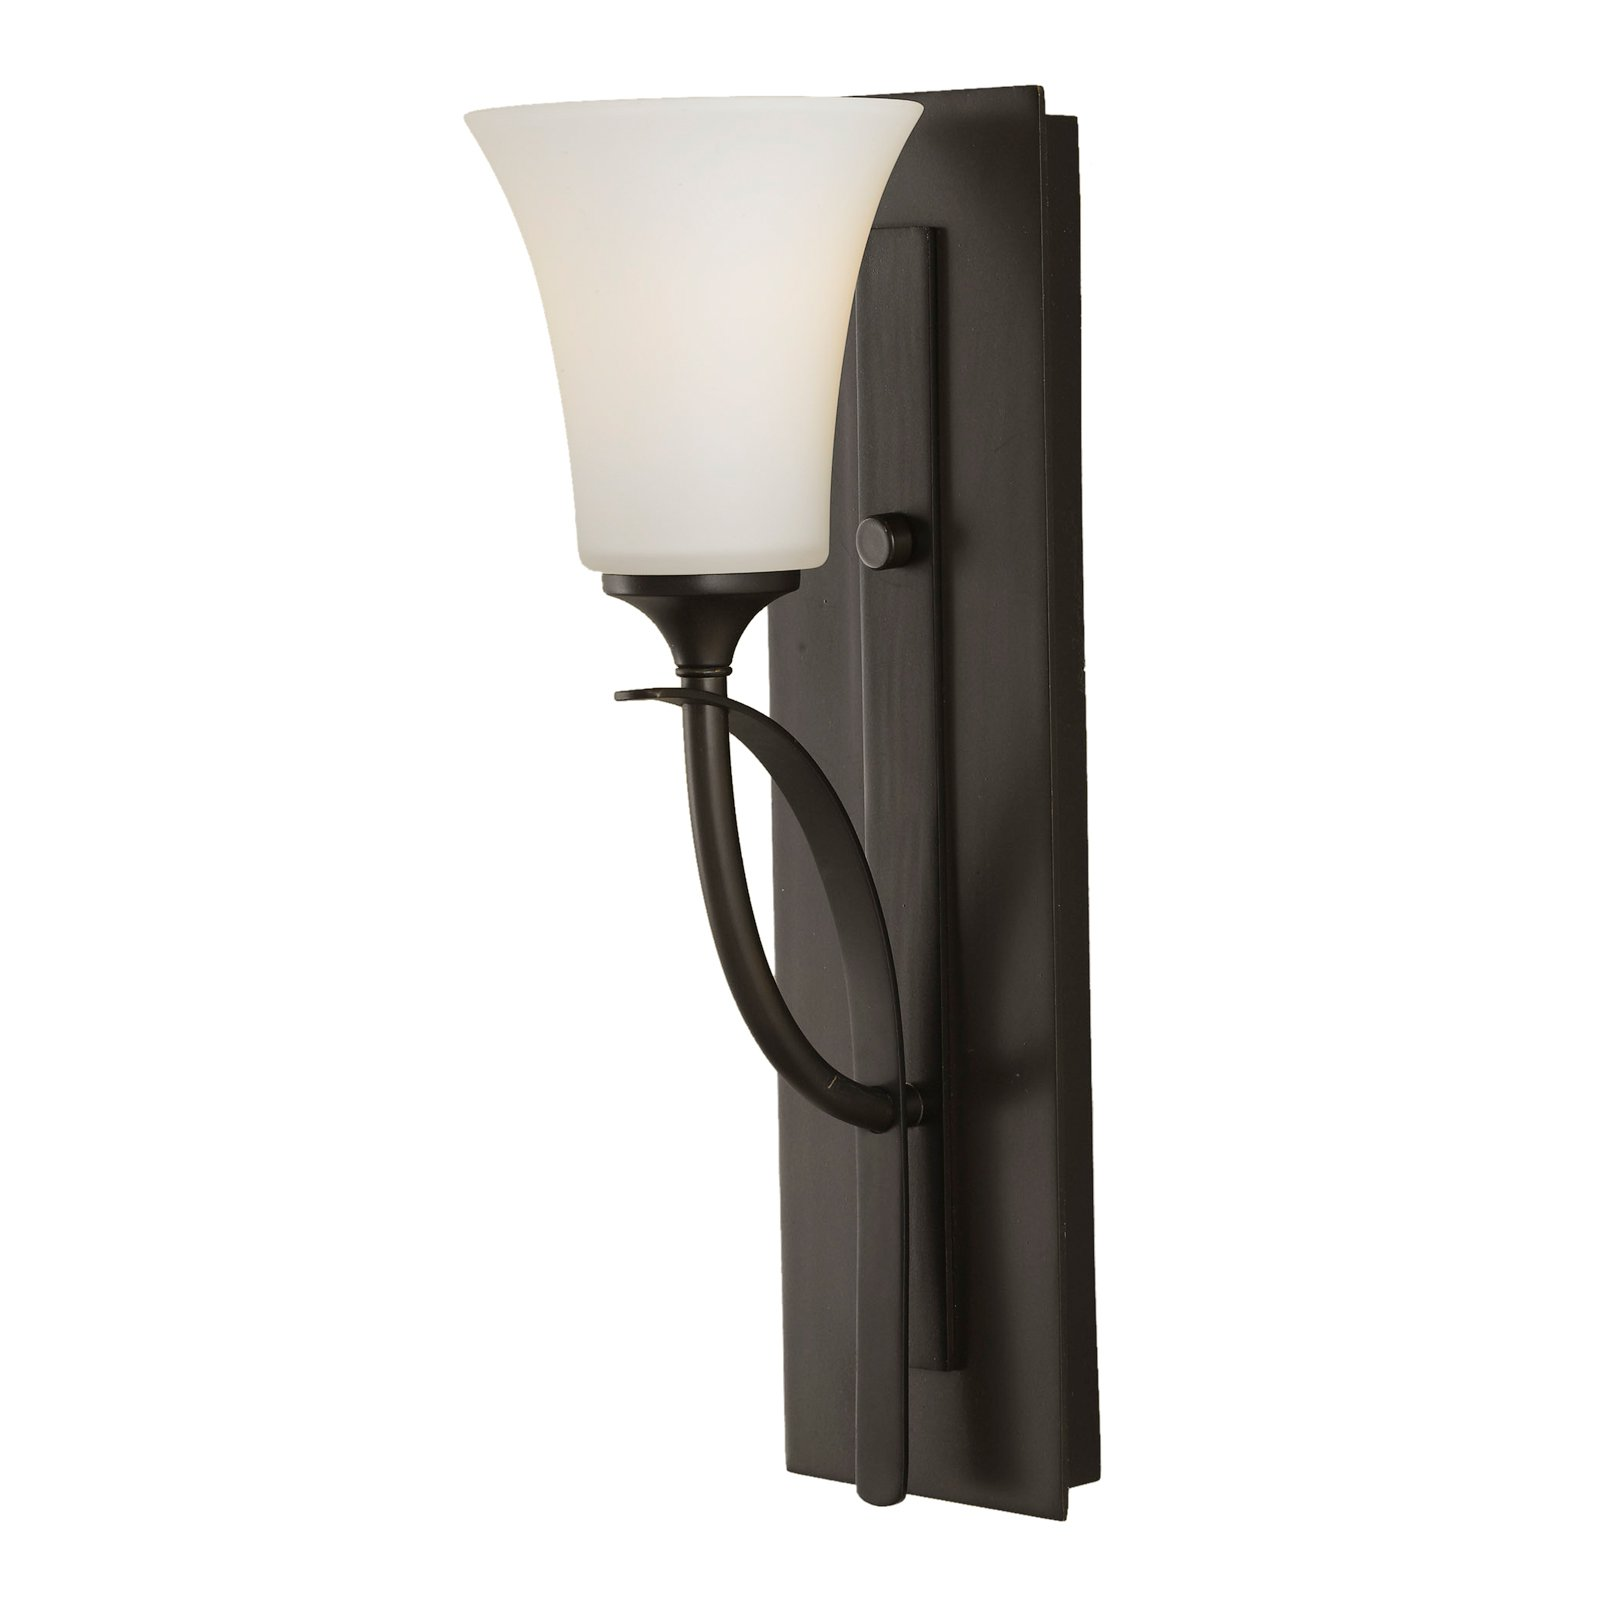 Feiss Barrington Bathroom Sconce 5W in. Oil Rubbed Bronze by Murray Feiss